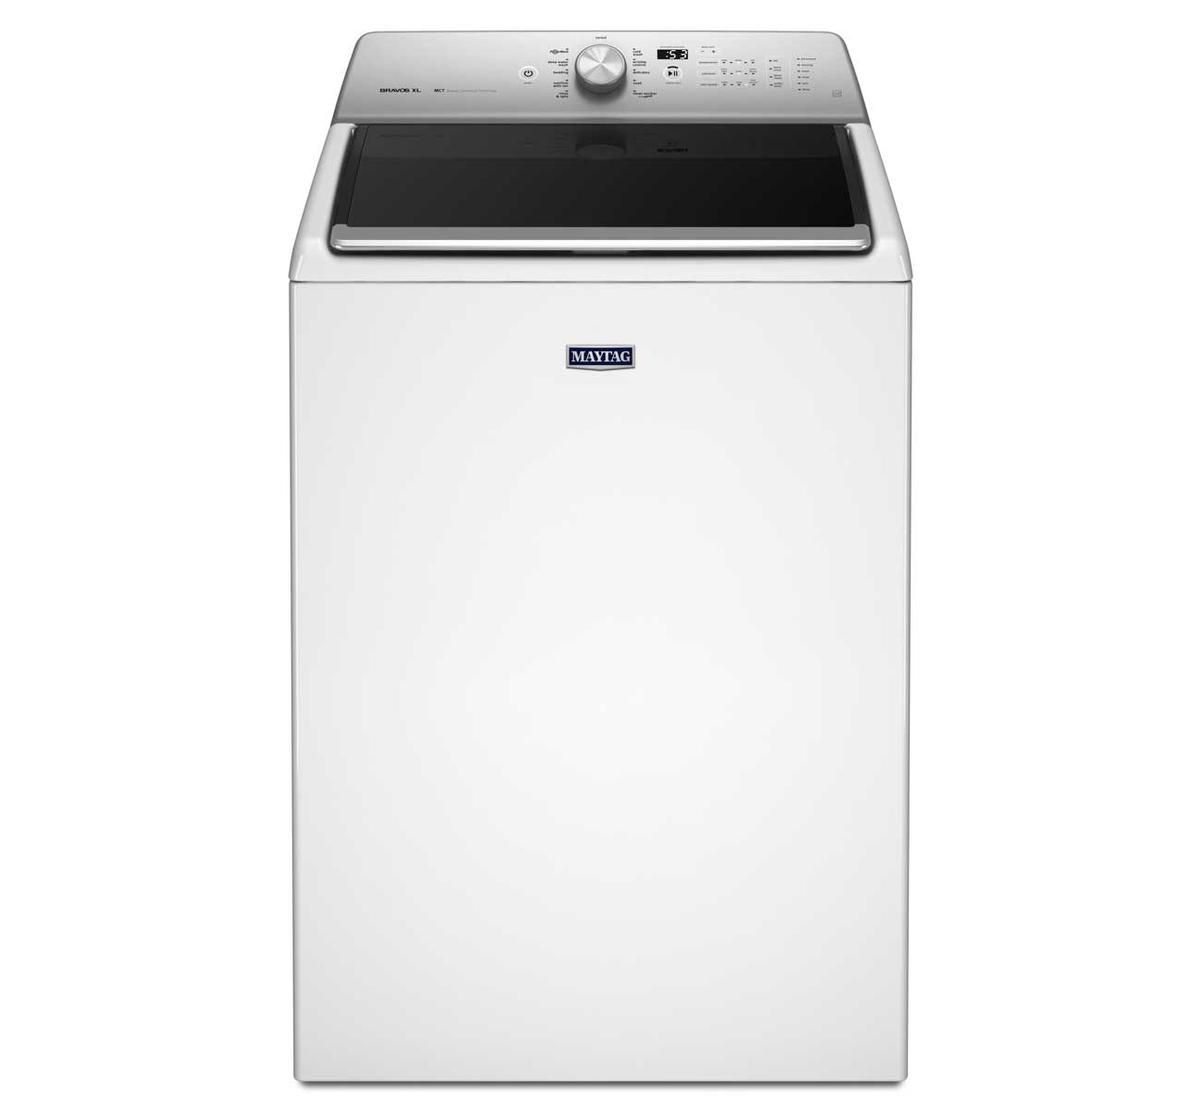 Picture of Maytag Super Capacity Top Load Washer & Dryer Pair